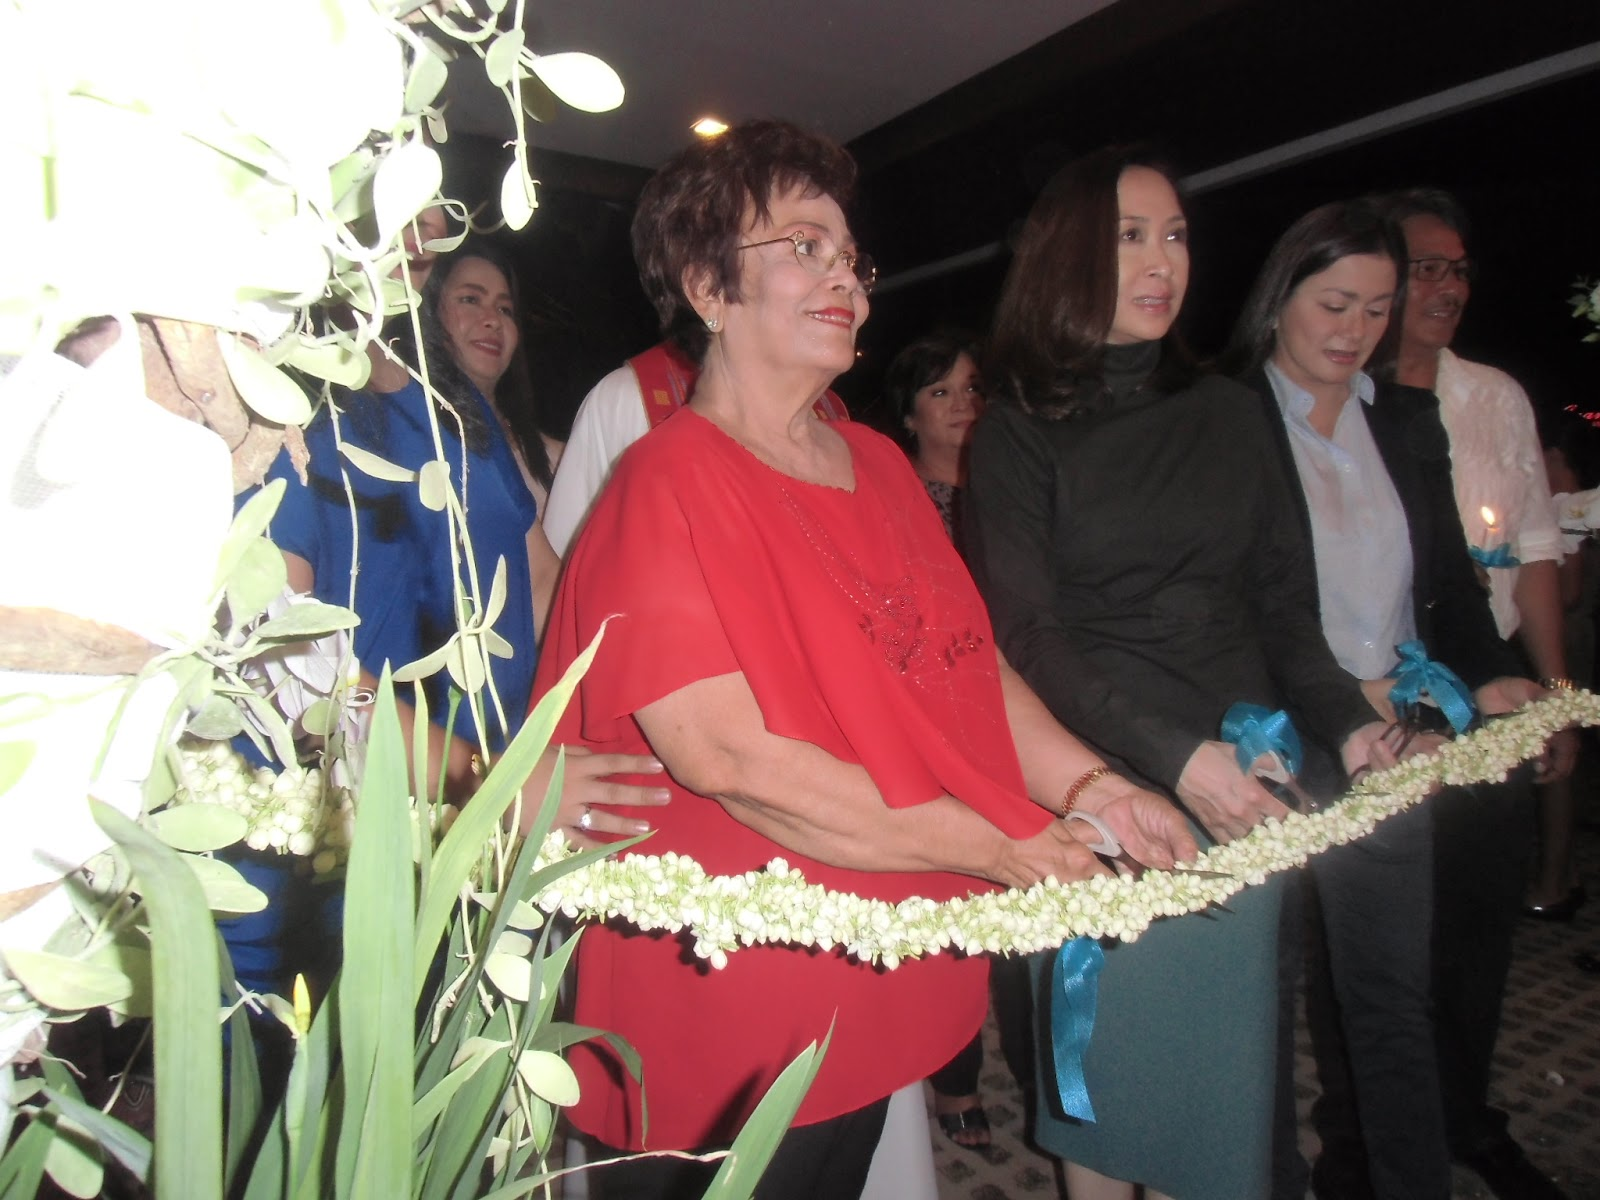 Dina Bonnevie And Vice Gov Dv Opens Victorinos Restaurant Jus Mangga By Sabrina Casava Ui The Activity Room Will Feature Ilocano Painters Artists From Time To Were Art Enthusiasts Can Come See Their Works